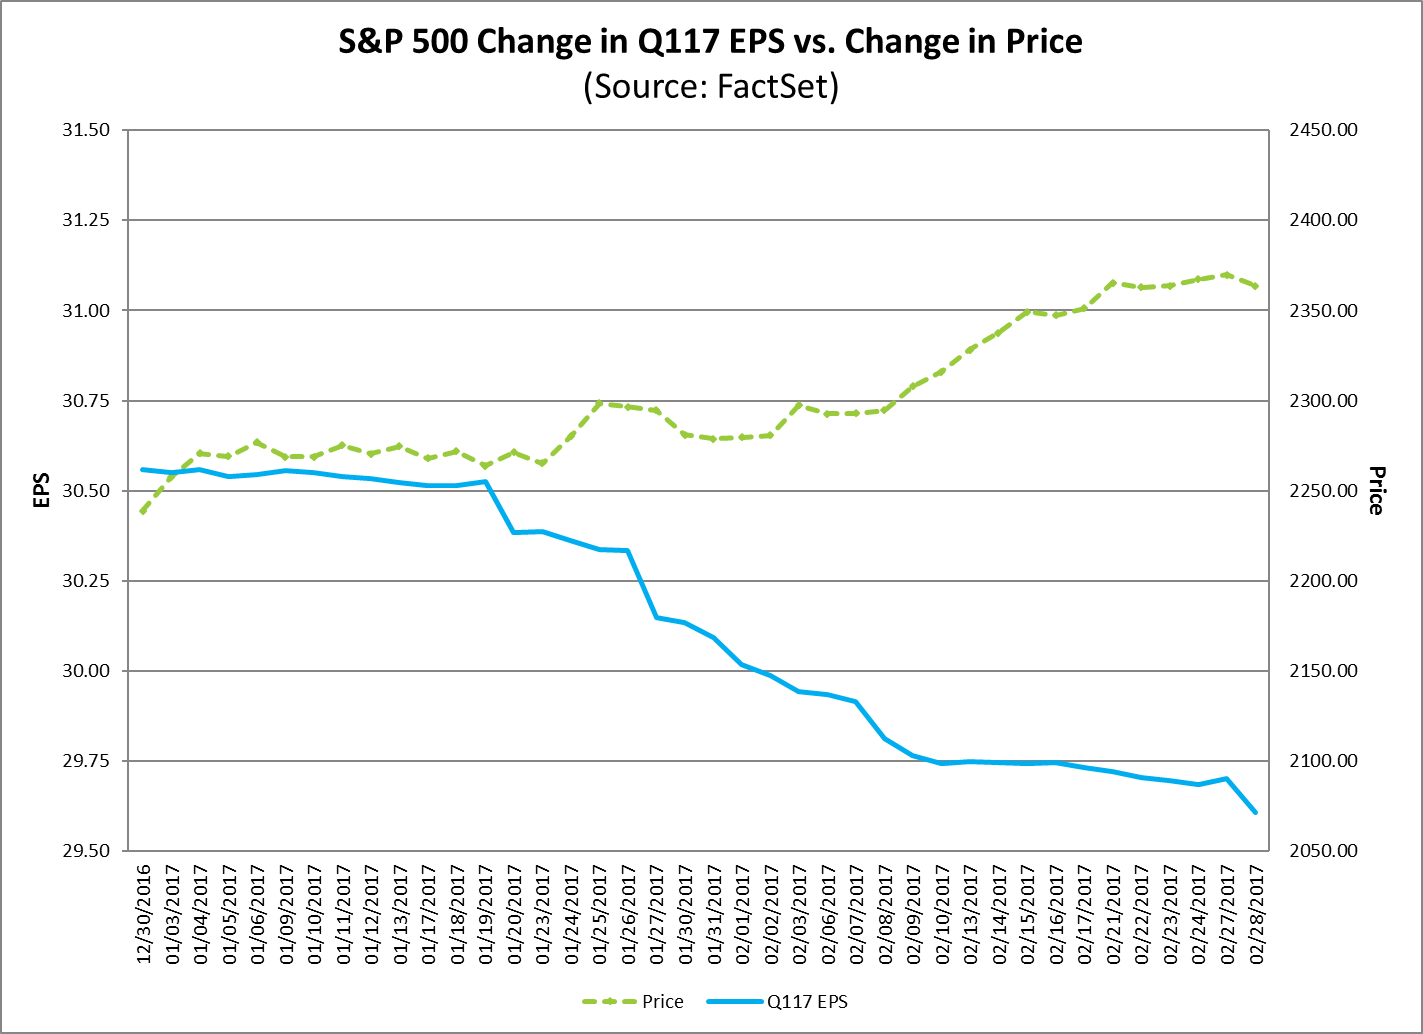 spx change in eps vs price.png